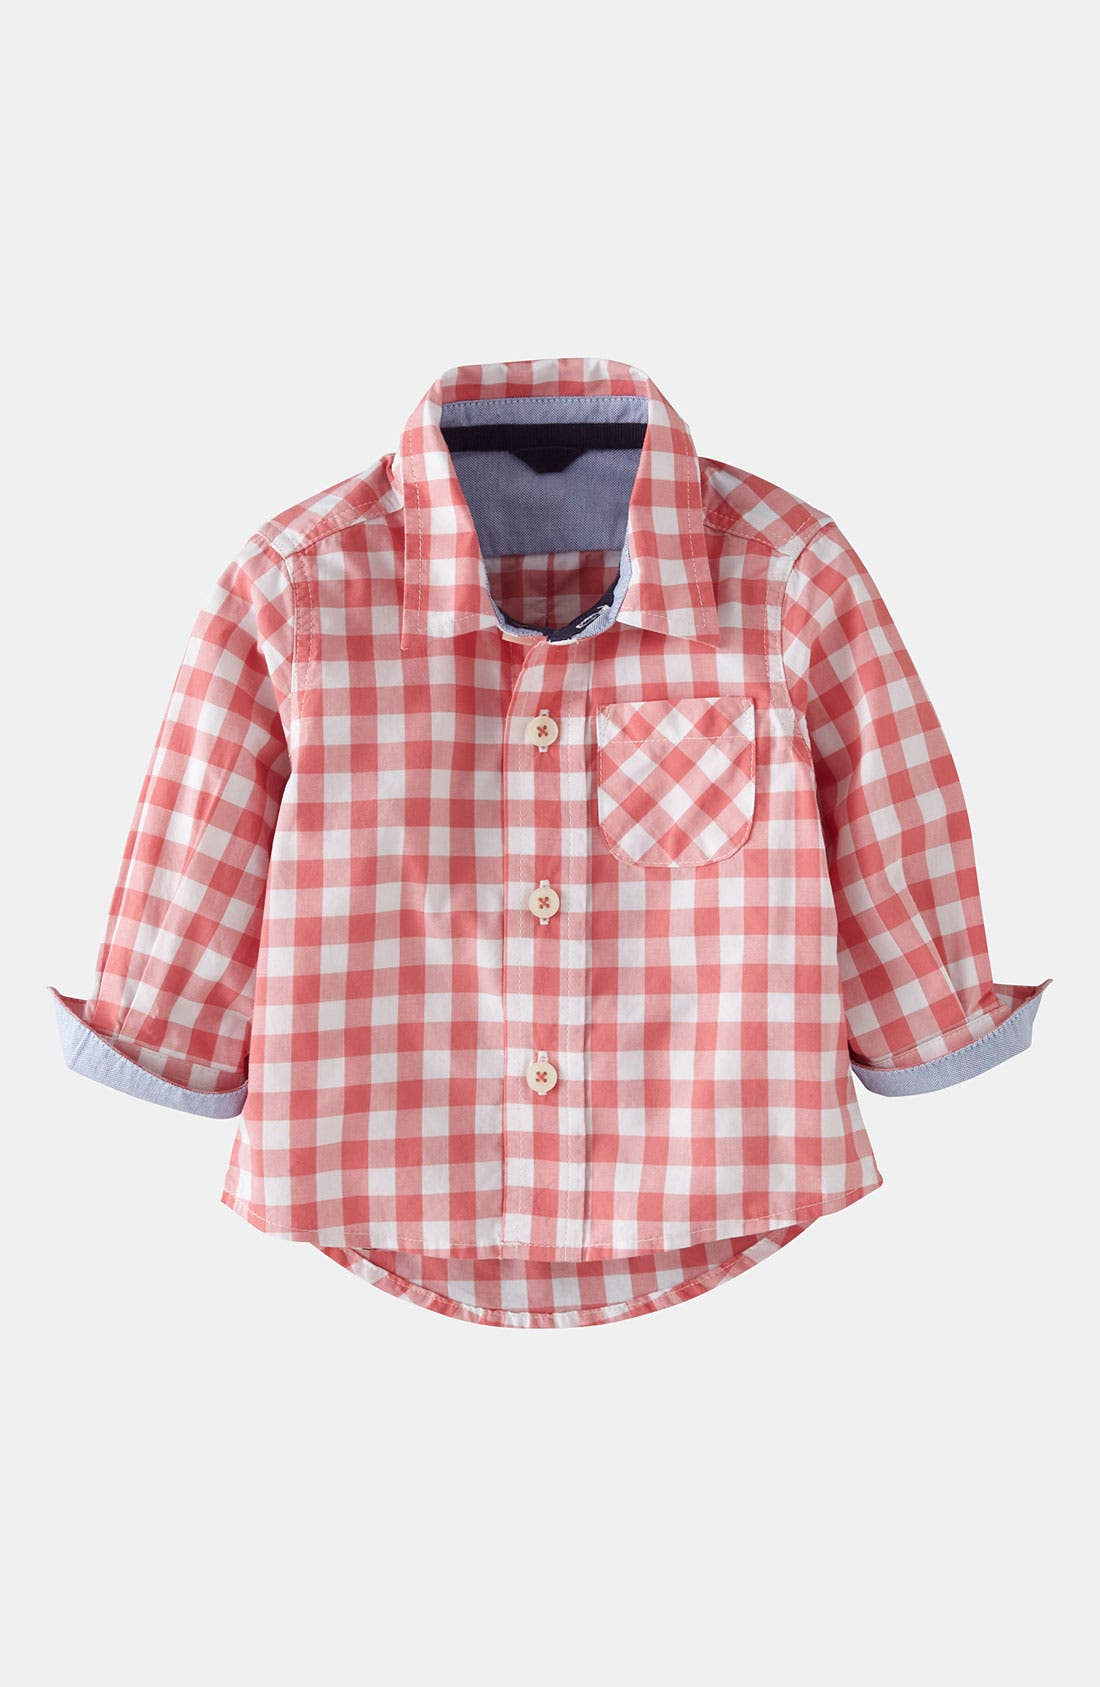 Main Image - Mini Boden 'Baby' Shirt (Baby)